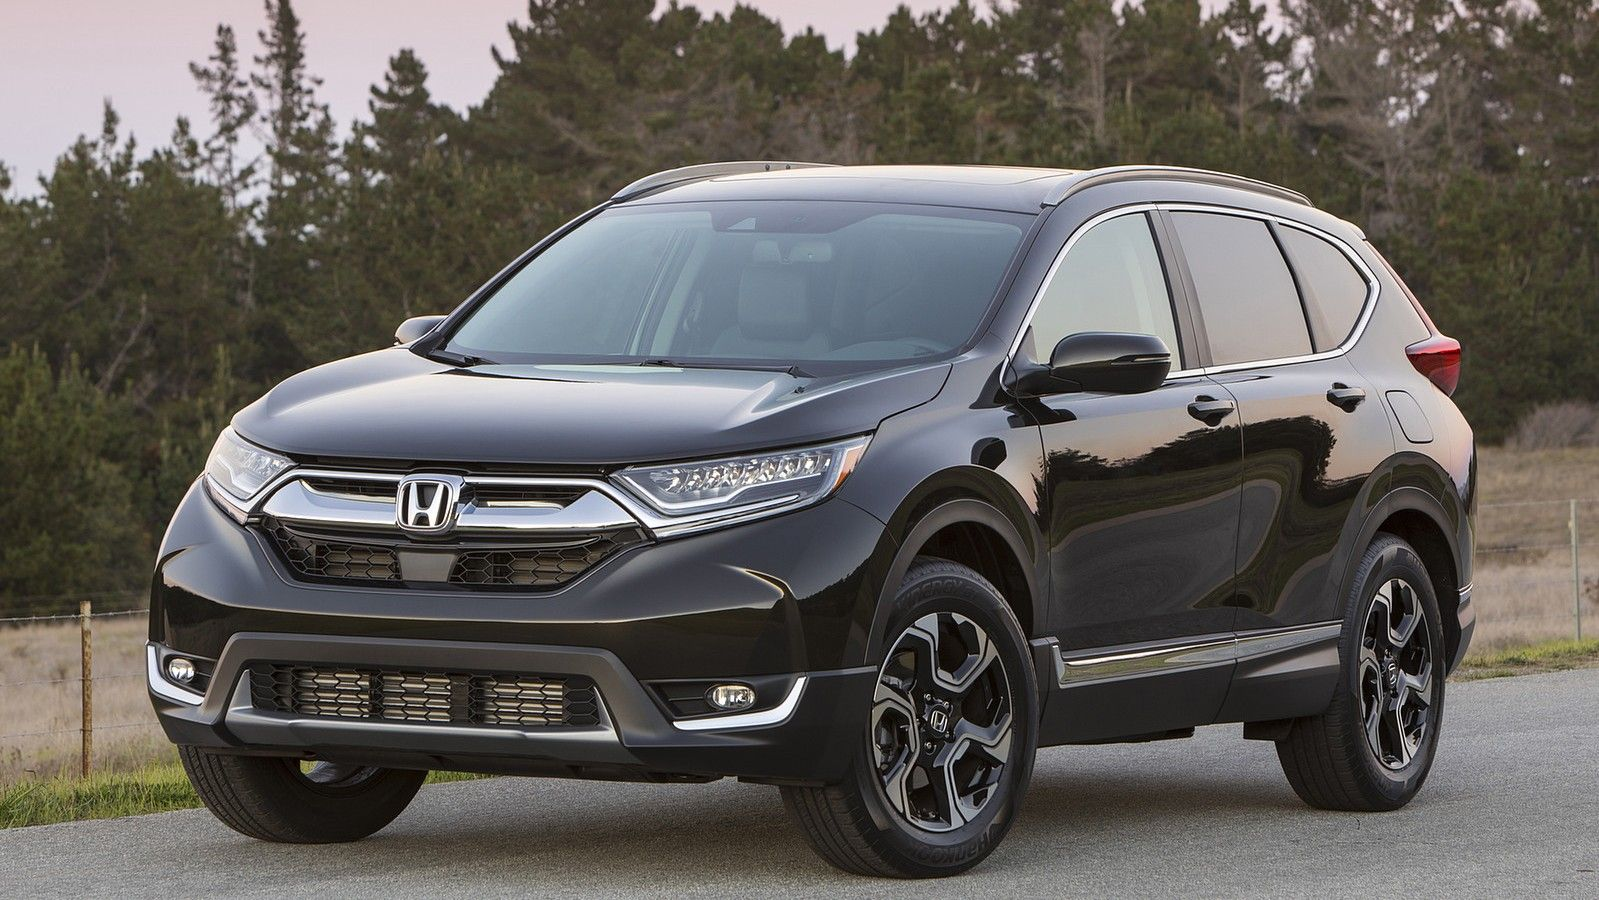 2020 honda crv front three quarters